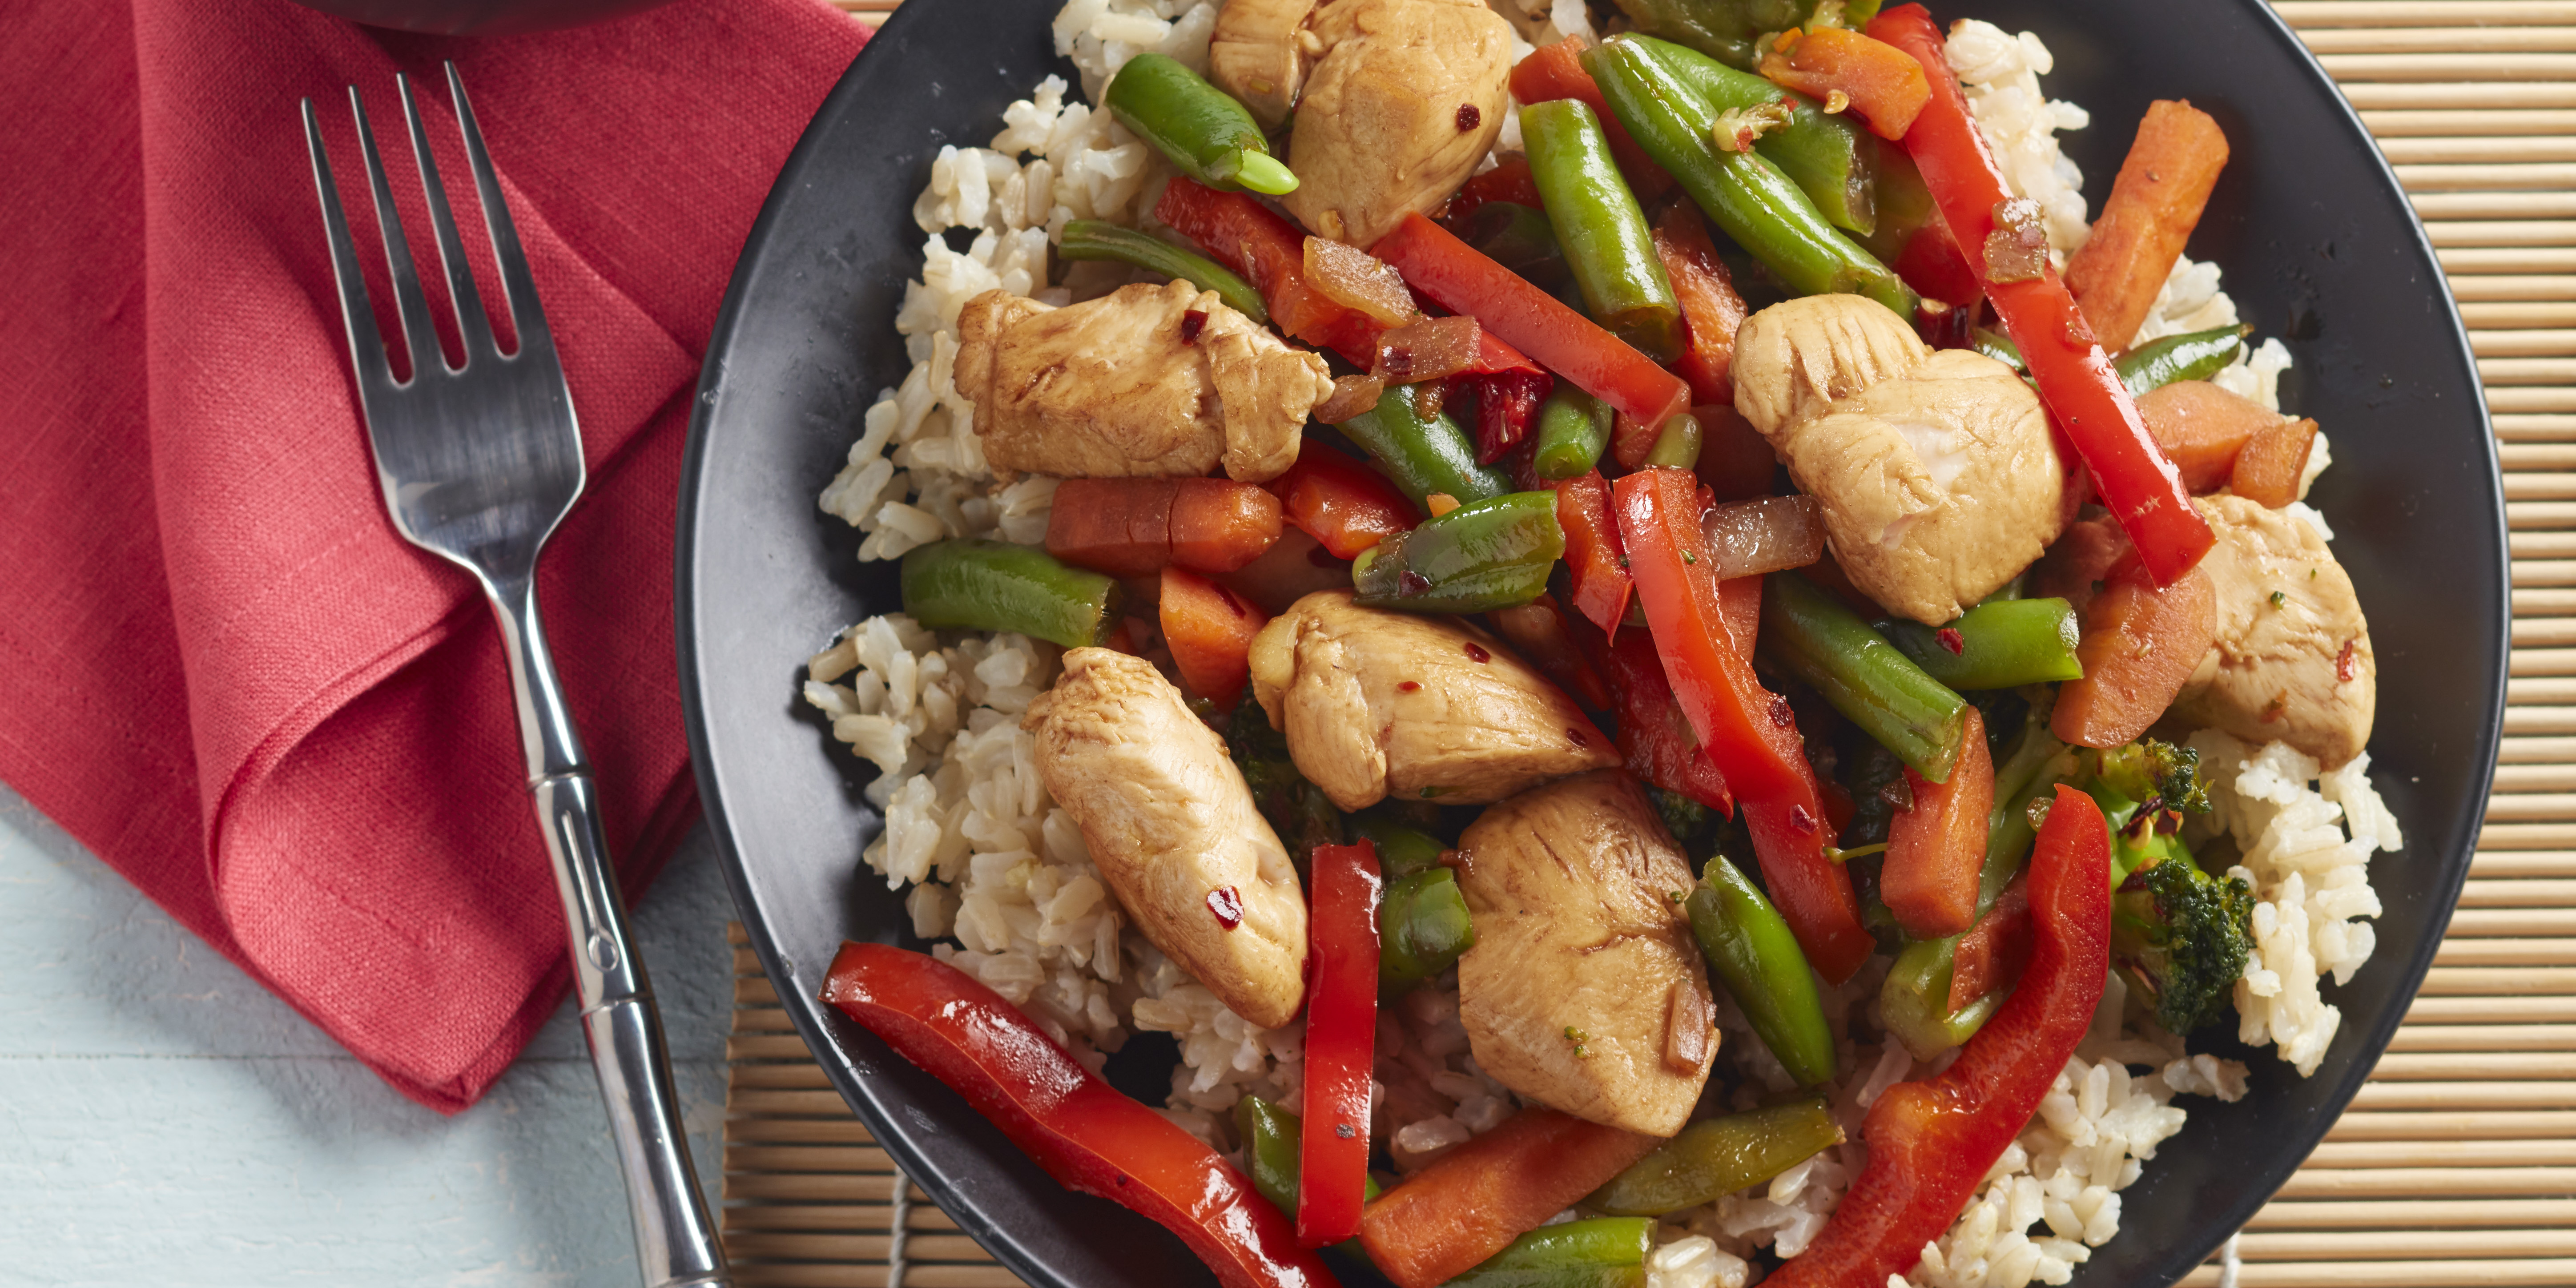 Szechuan Chicken and Vegetables